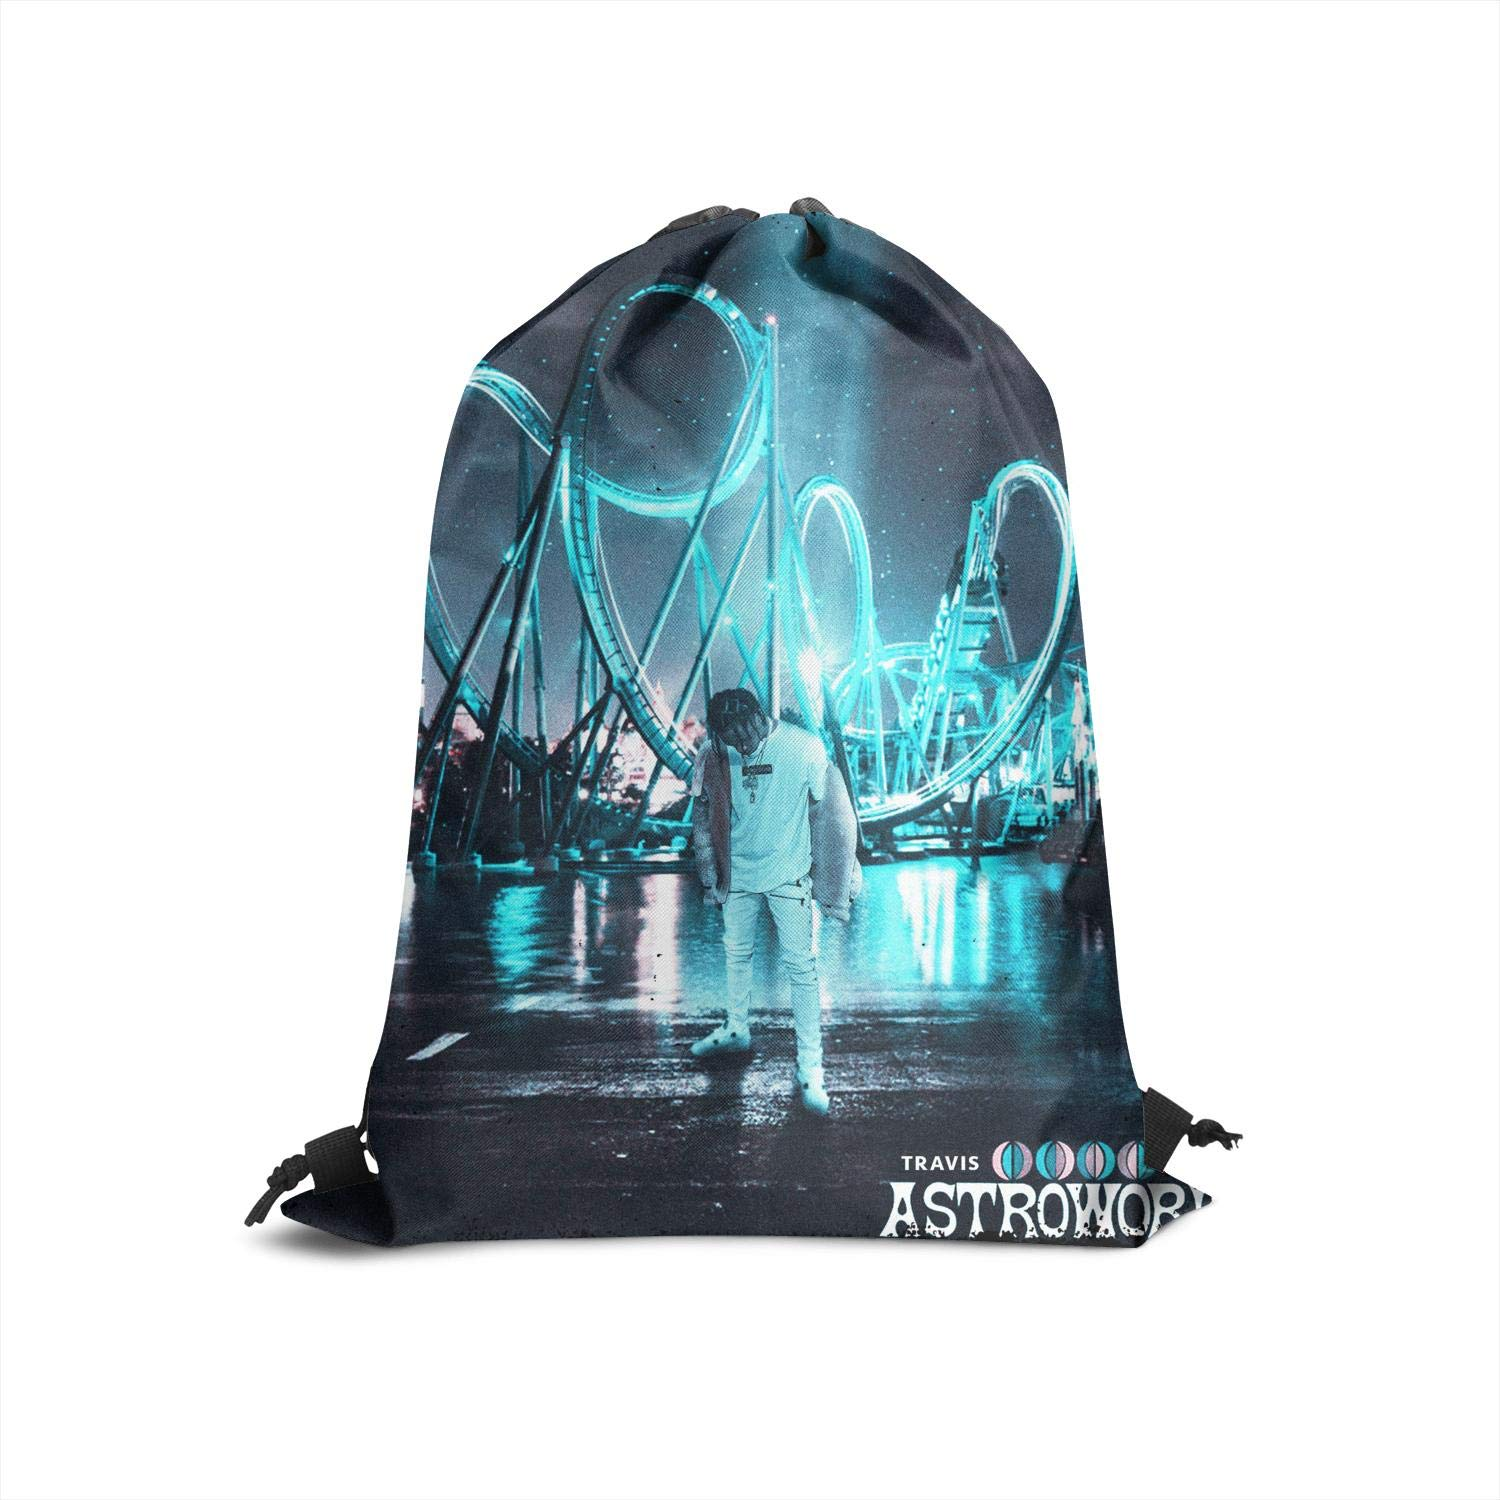 64aac3c34d00 Amazon.com: YAYAZANPl Drawstring Backpack Dancing Bag Athletic ...